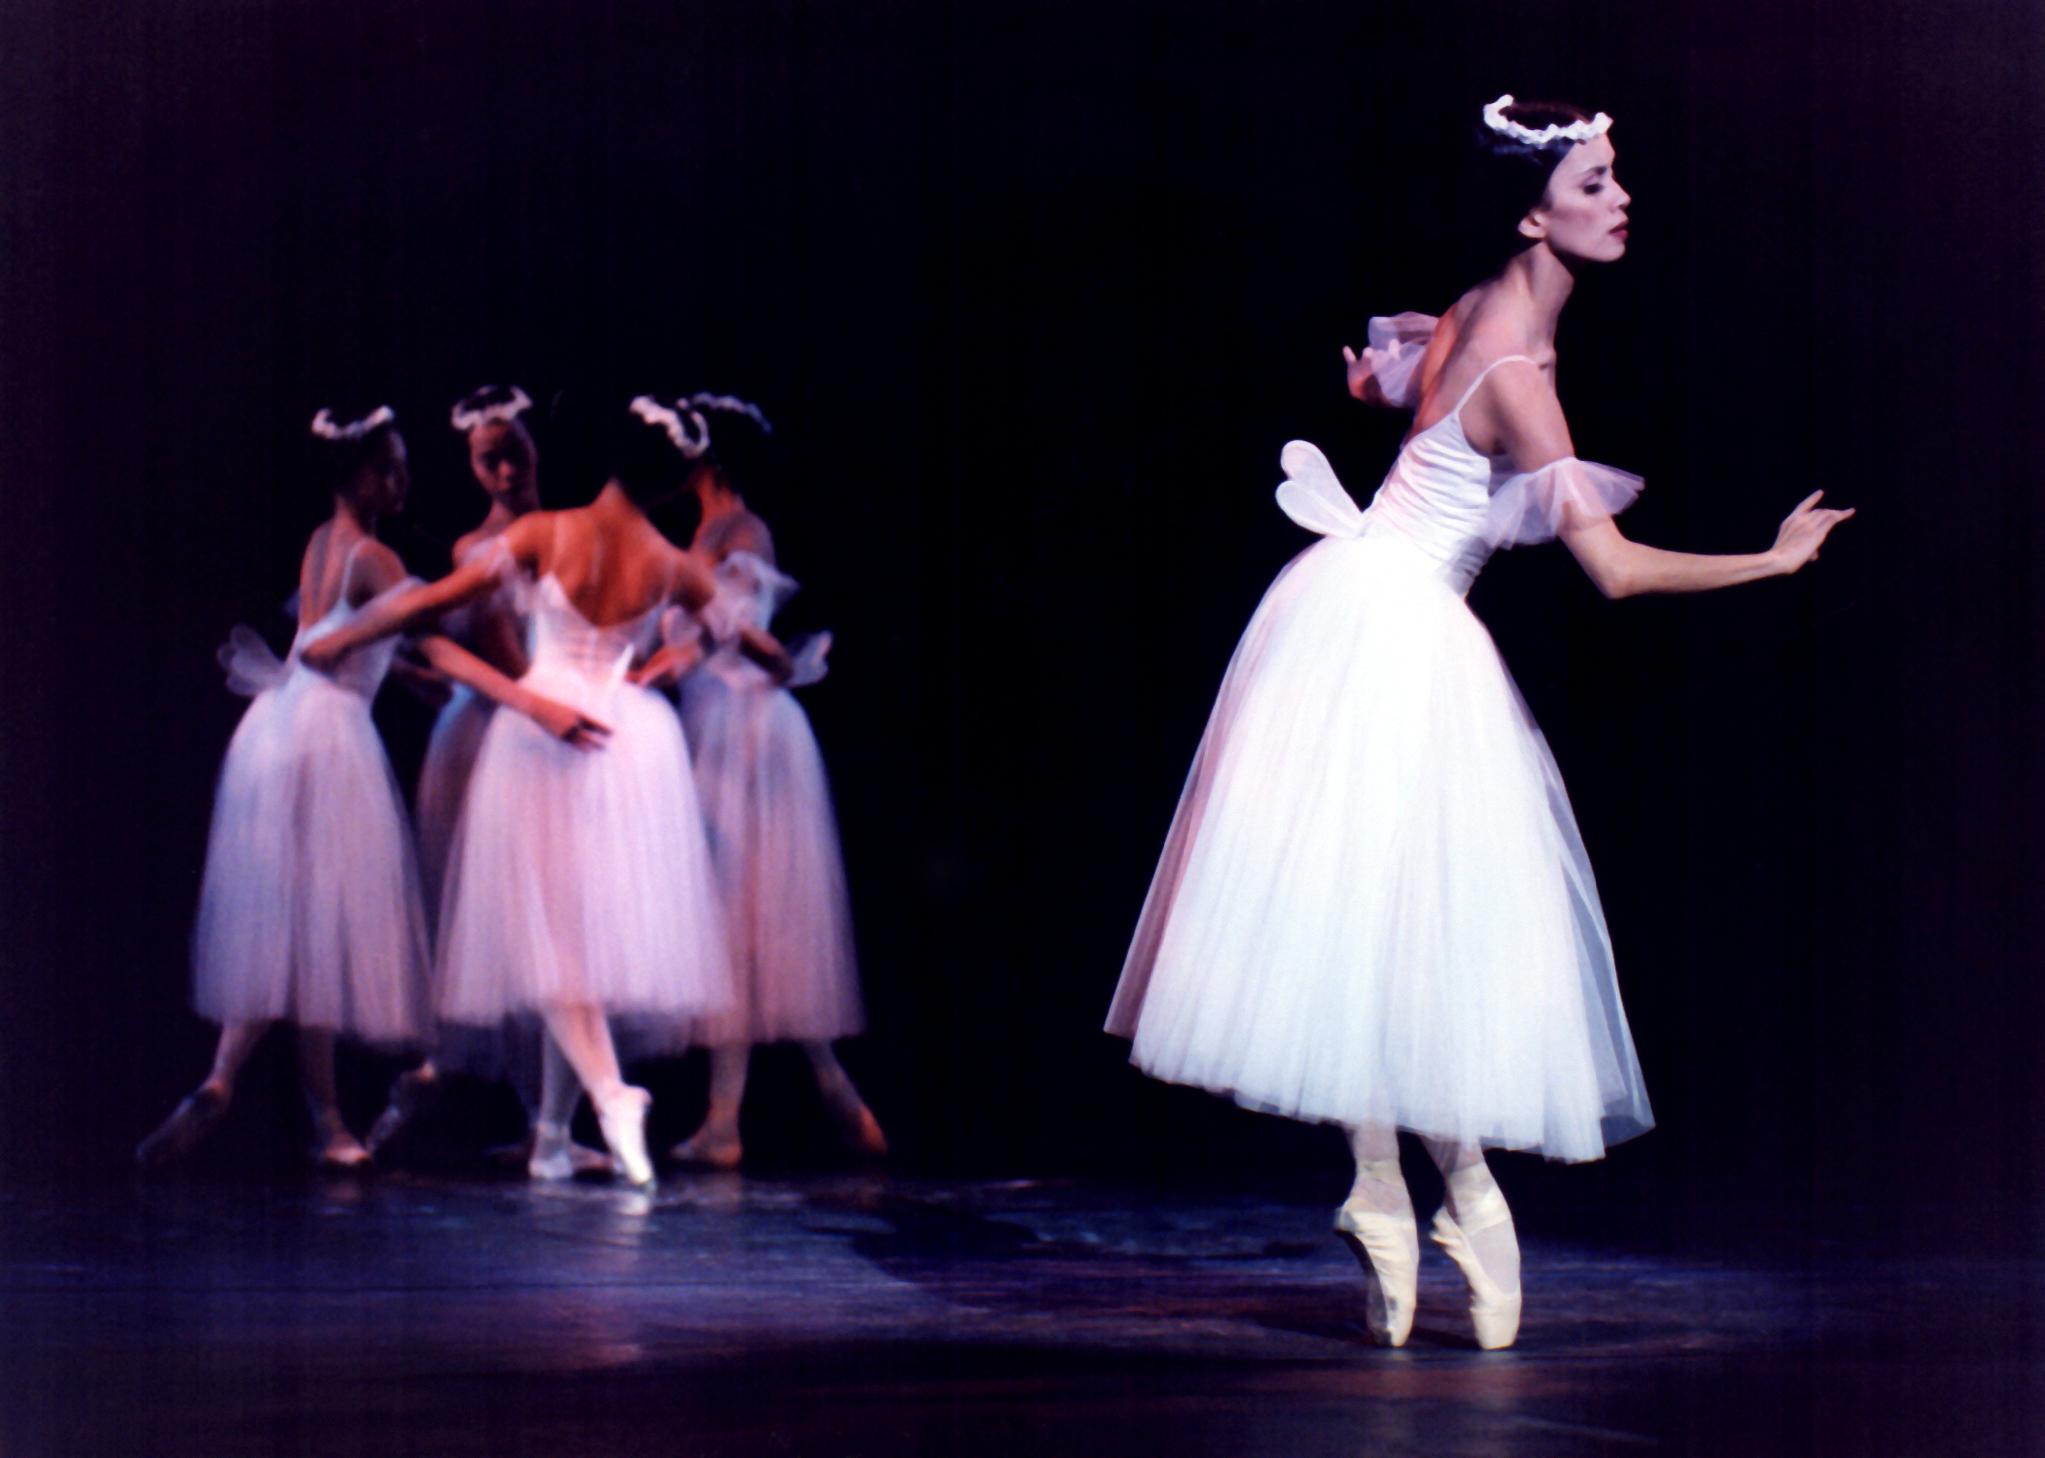 Ballet Manila brings back the Russian classic  Les Sylphides  which it first presented in 2000. Photo from the Ballet Manila Archives collection by Ocs Alvarez